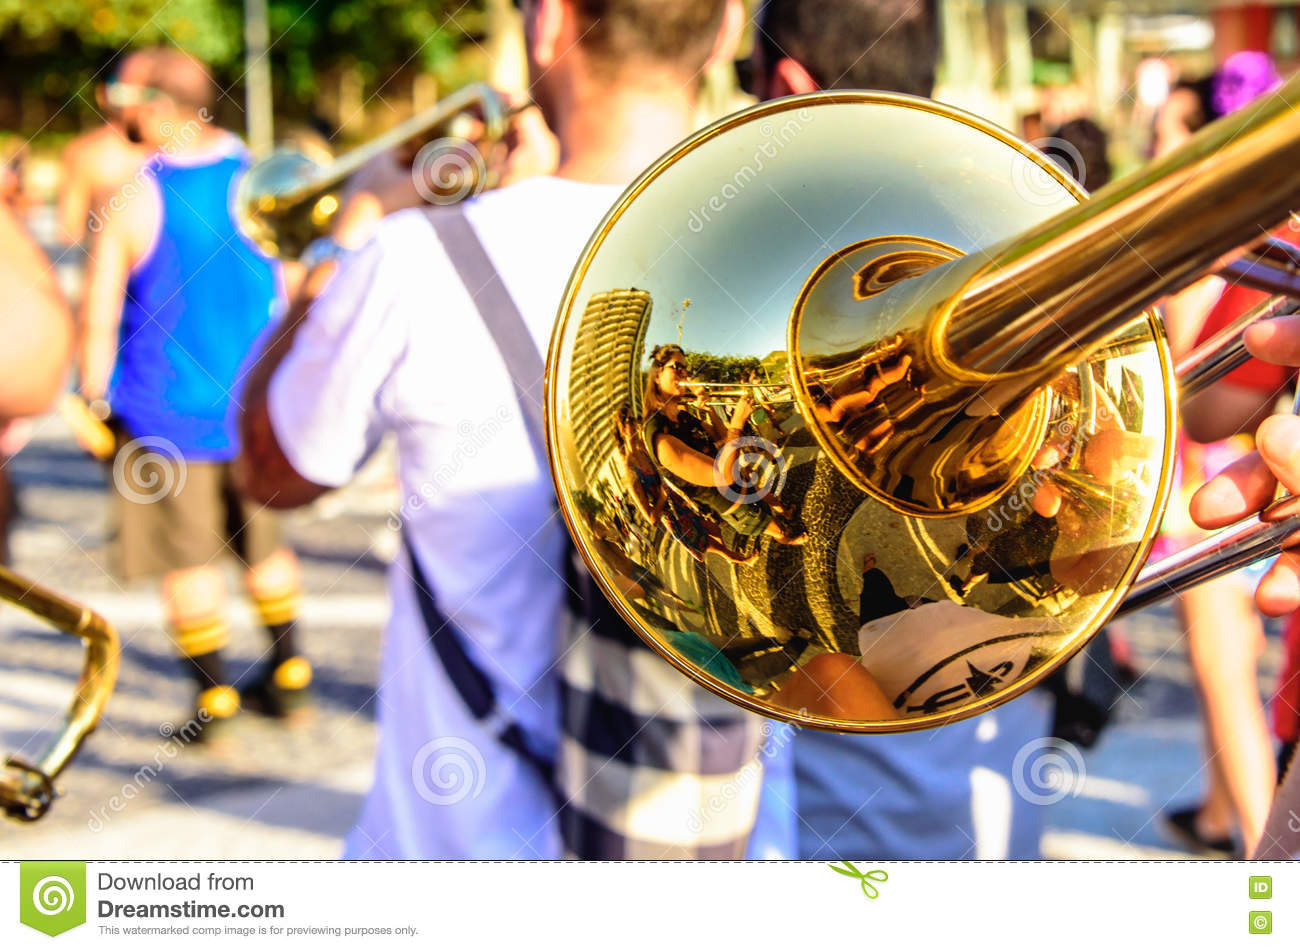 Shiny trombone and blurry musicians playing catchy music at Leme district, Rio de Janeiro, Brazil